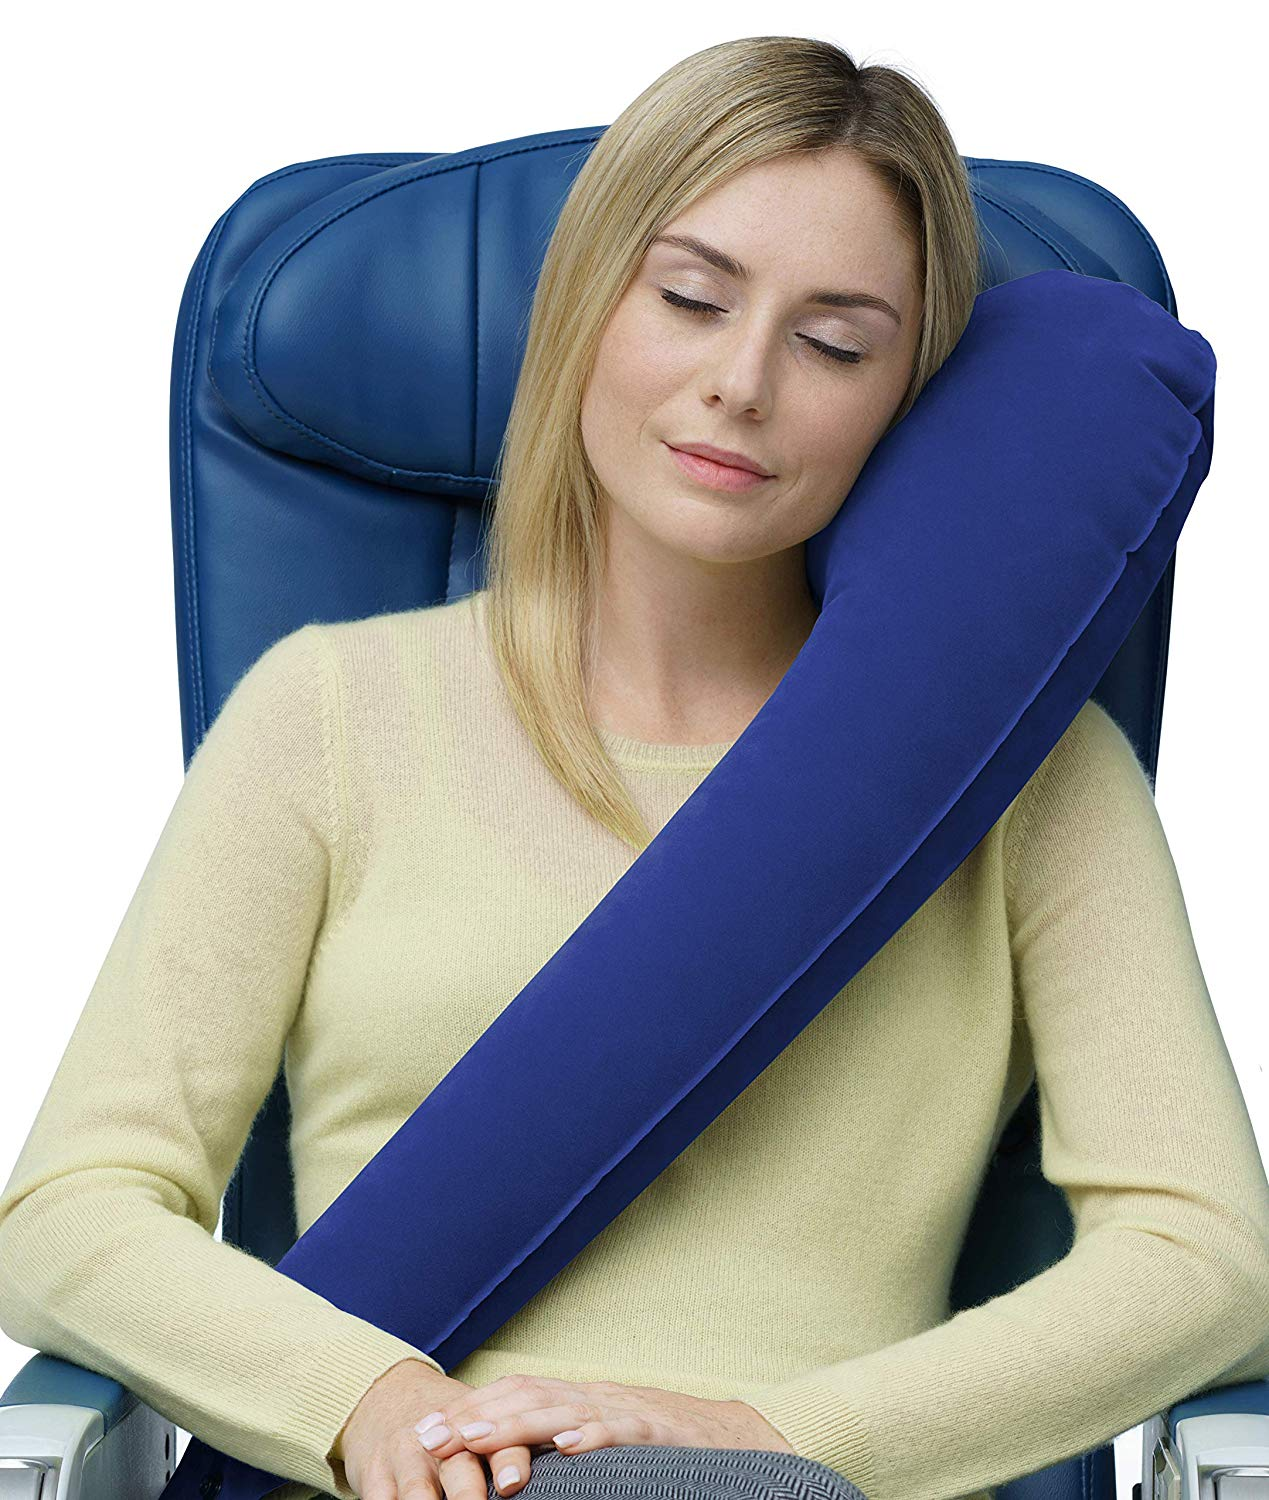 a7e6a29be5f1 Best travel pillows for 2019  Yes